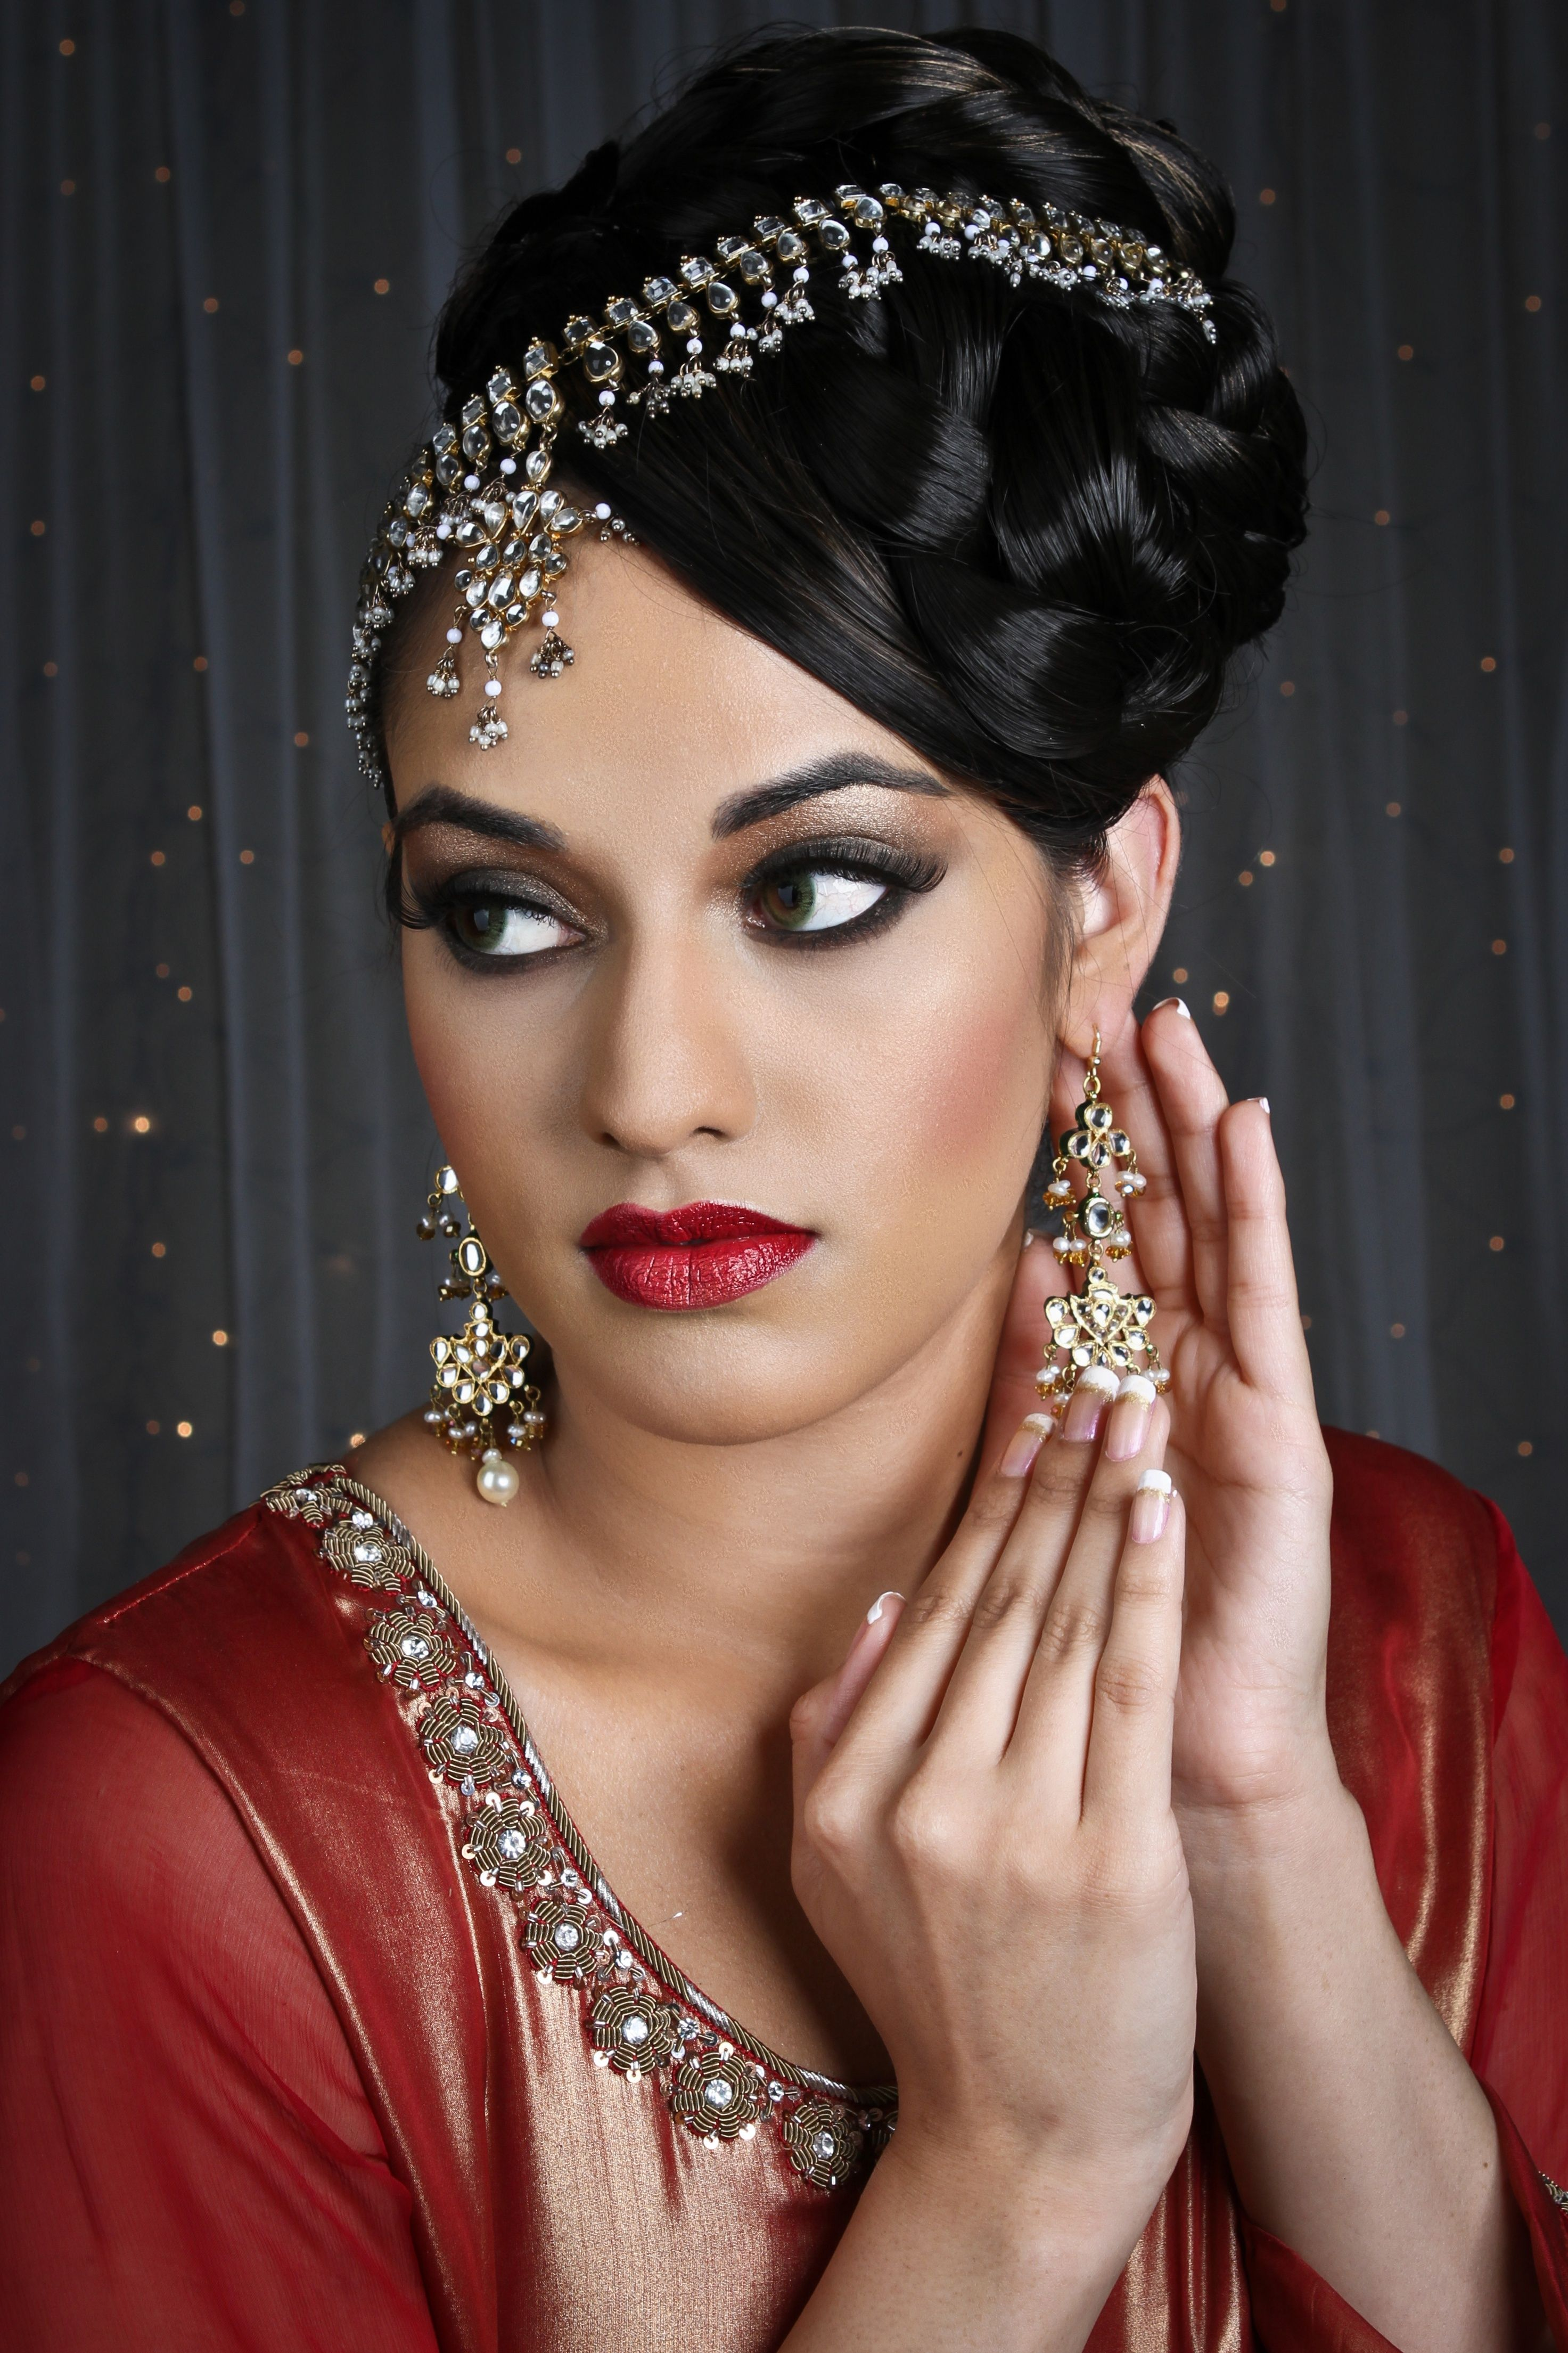 raveen with contemporary 2013 hairstyle and makeup for the modern